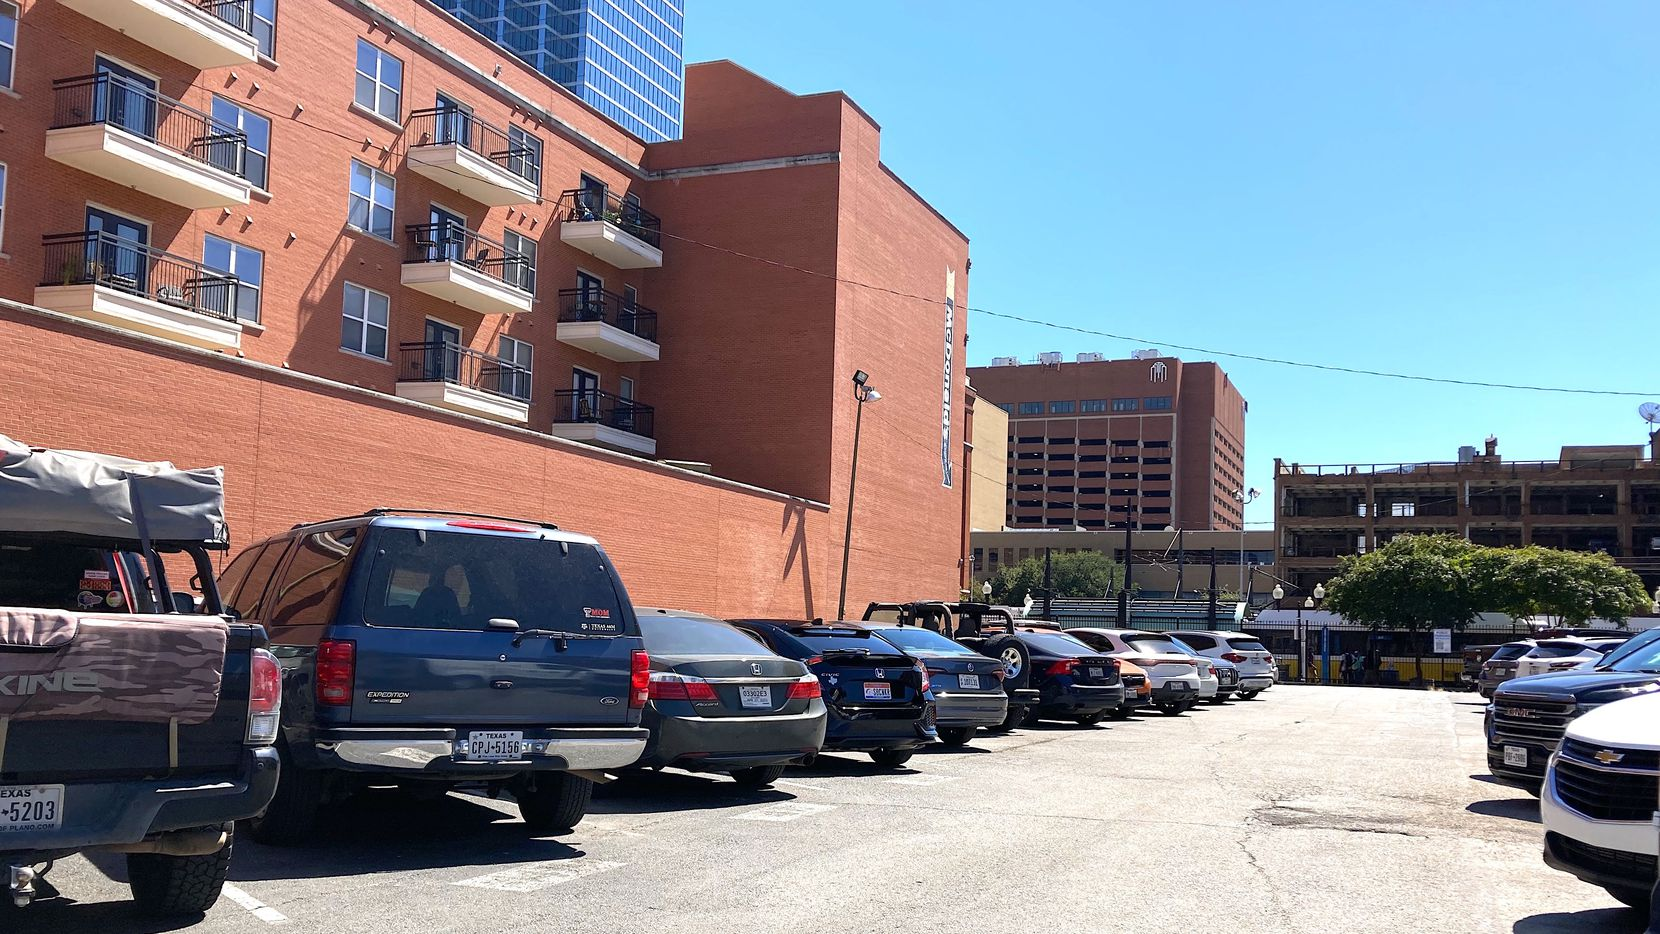 One of the properties sold is adjacent to DART's West End rail station.